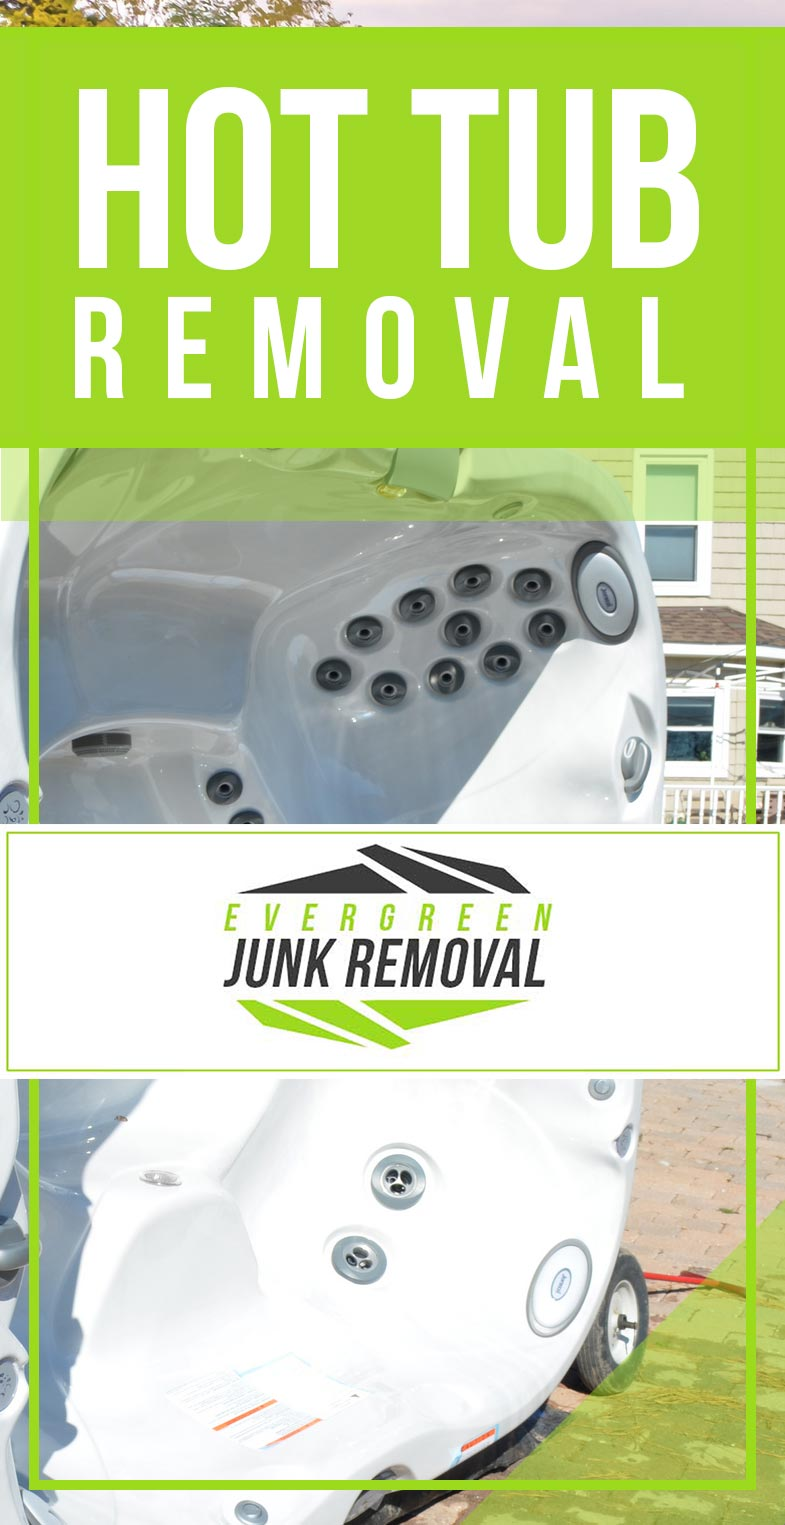 North Miami Hot Tub Removal